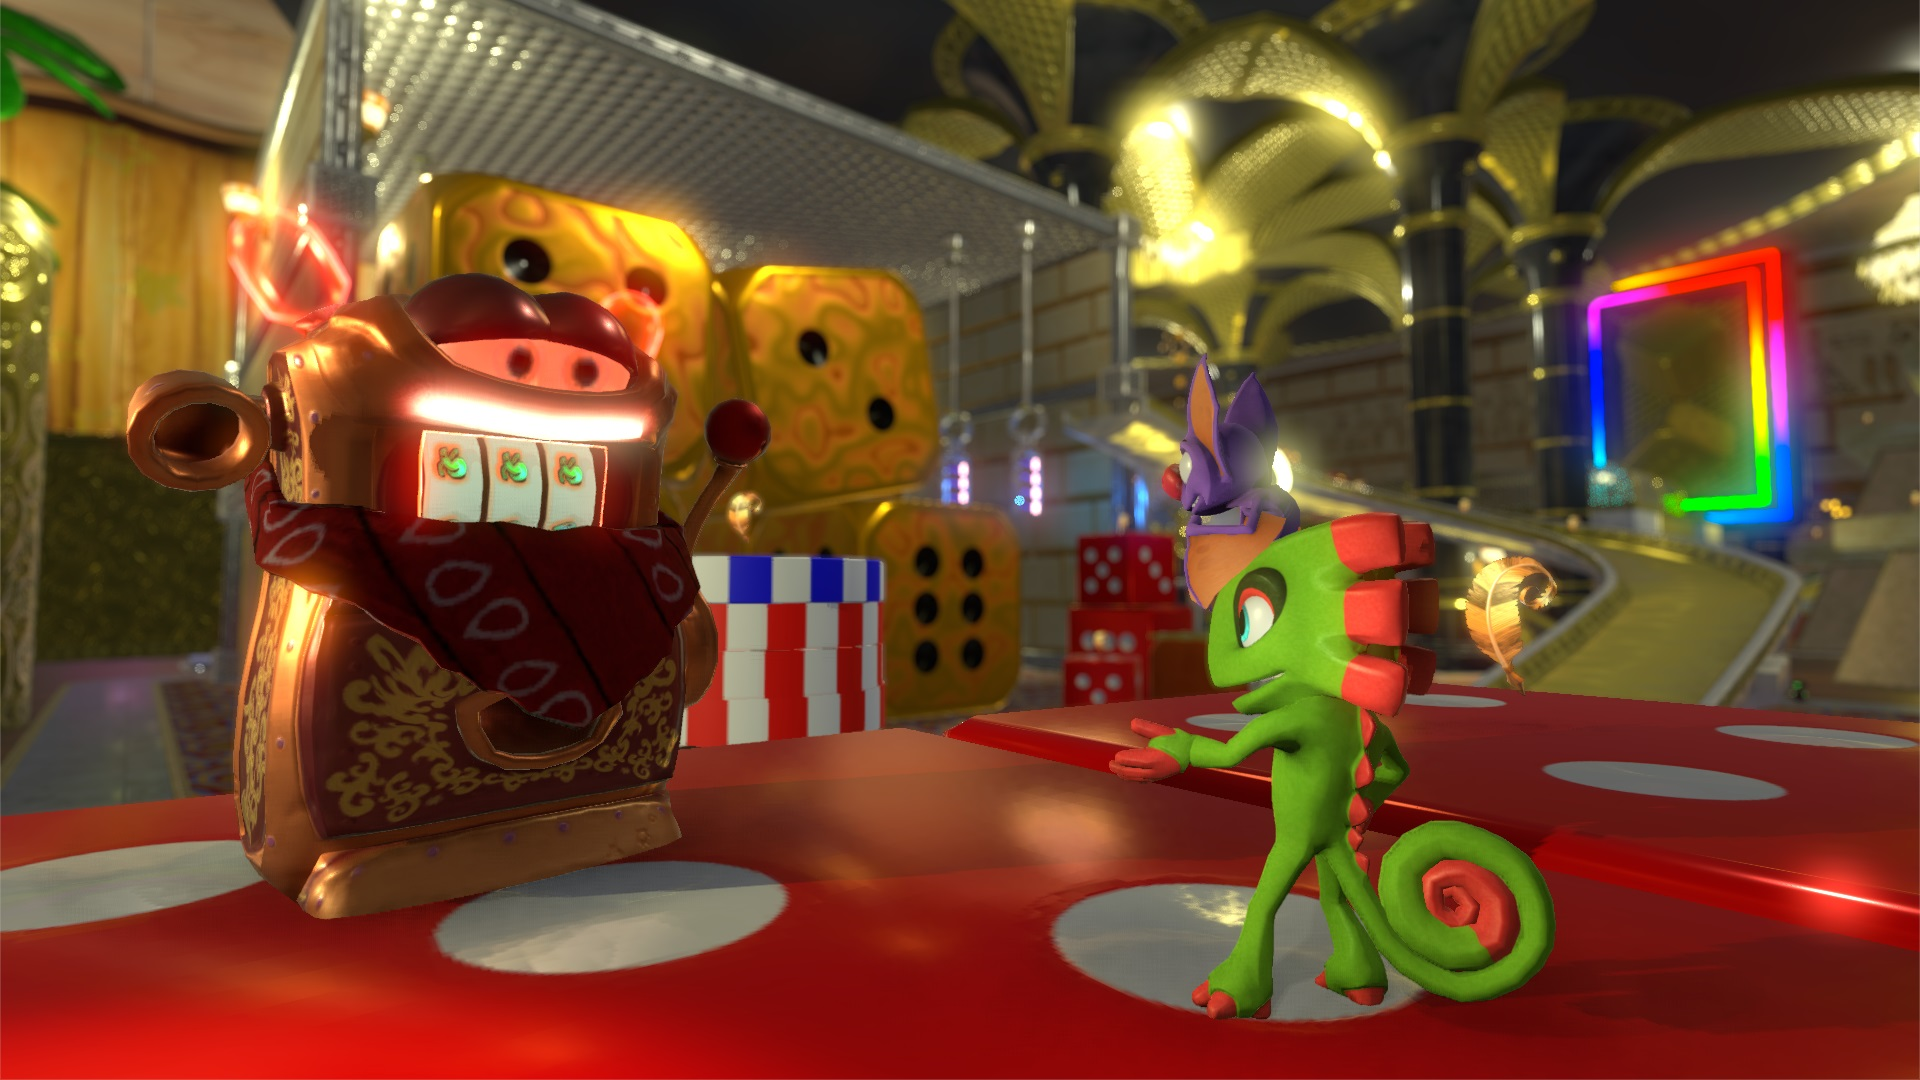 How To Save In Yooka Laylee Allgamers Ps4 When Doubt Exit The Grand Tome Youre Back Hivory Towers